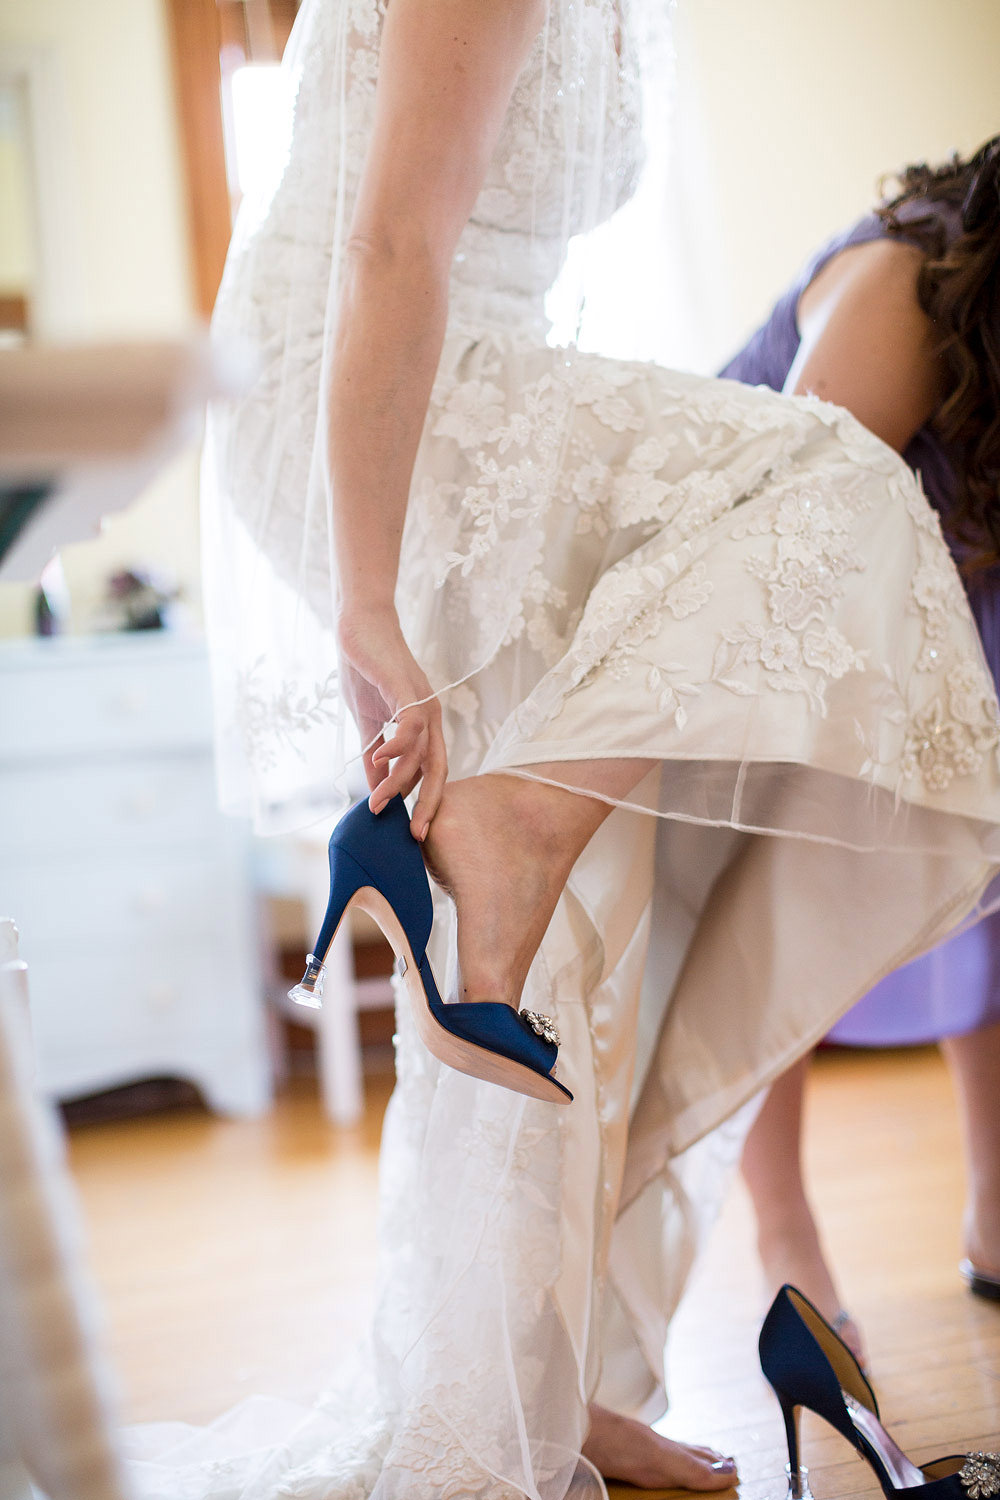 A bride putting on a navy blue high heel shoe